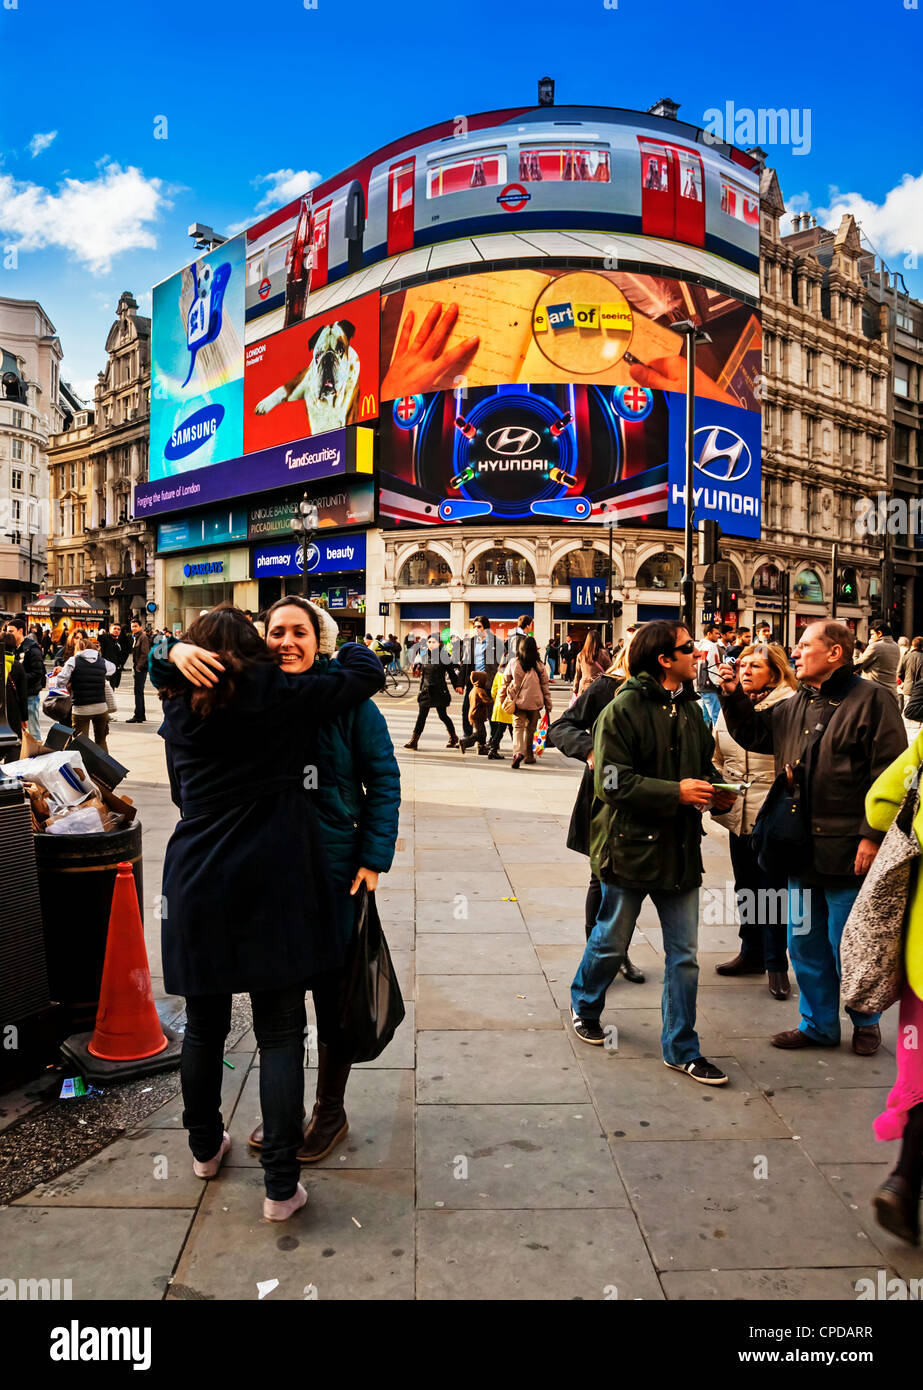 Piccadilly Circus, London, England. - Stock Image